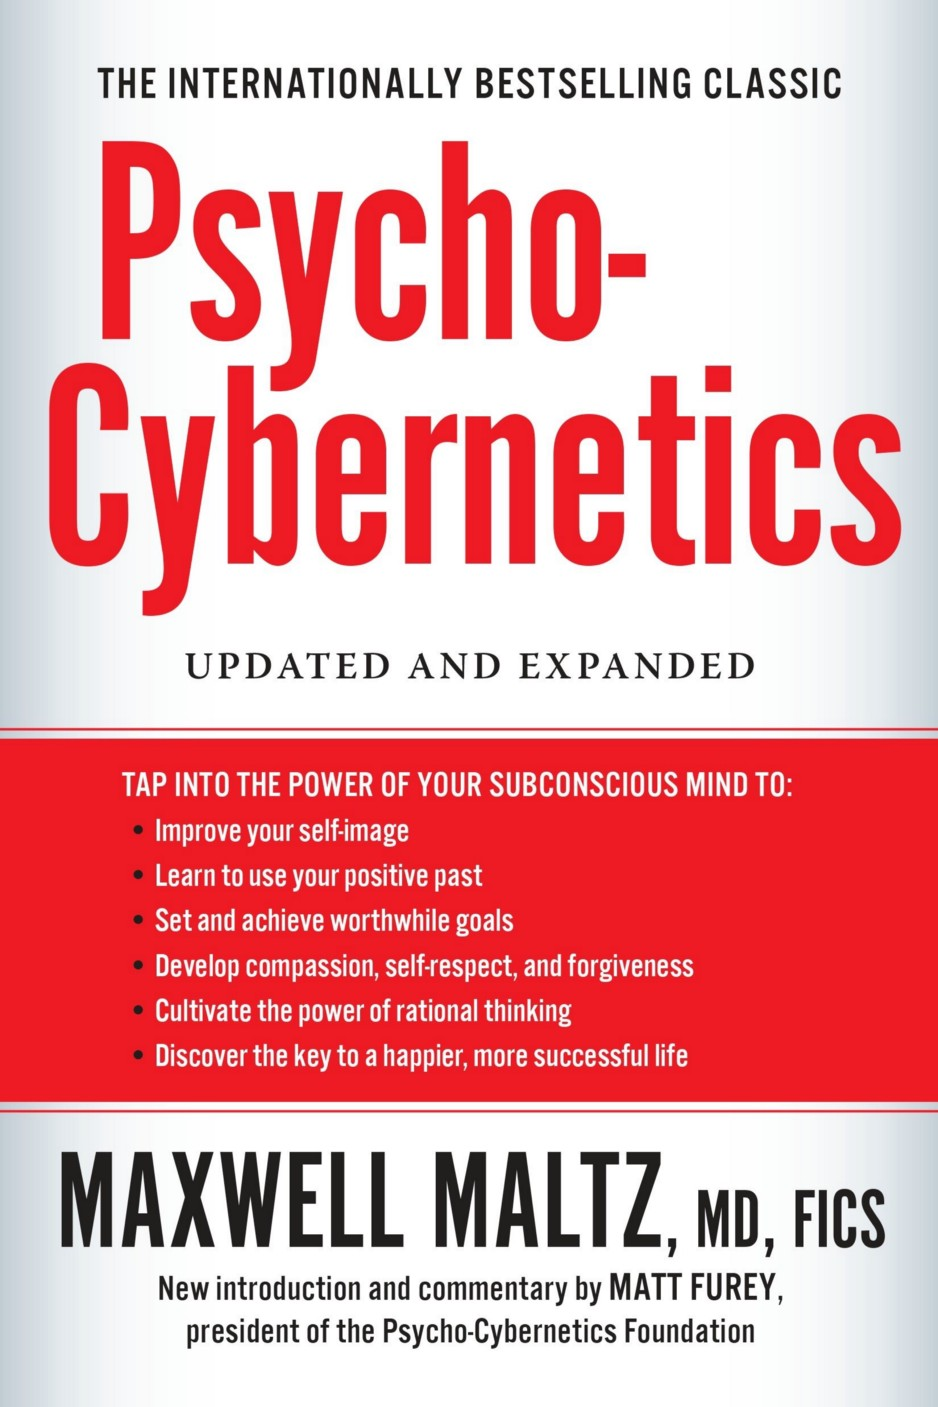 Book Notes: Psycho Cybernetics by Maxwell Maltz - The Write